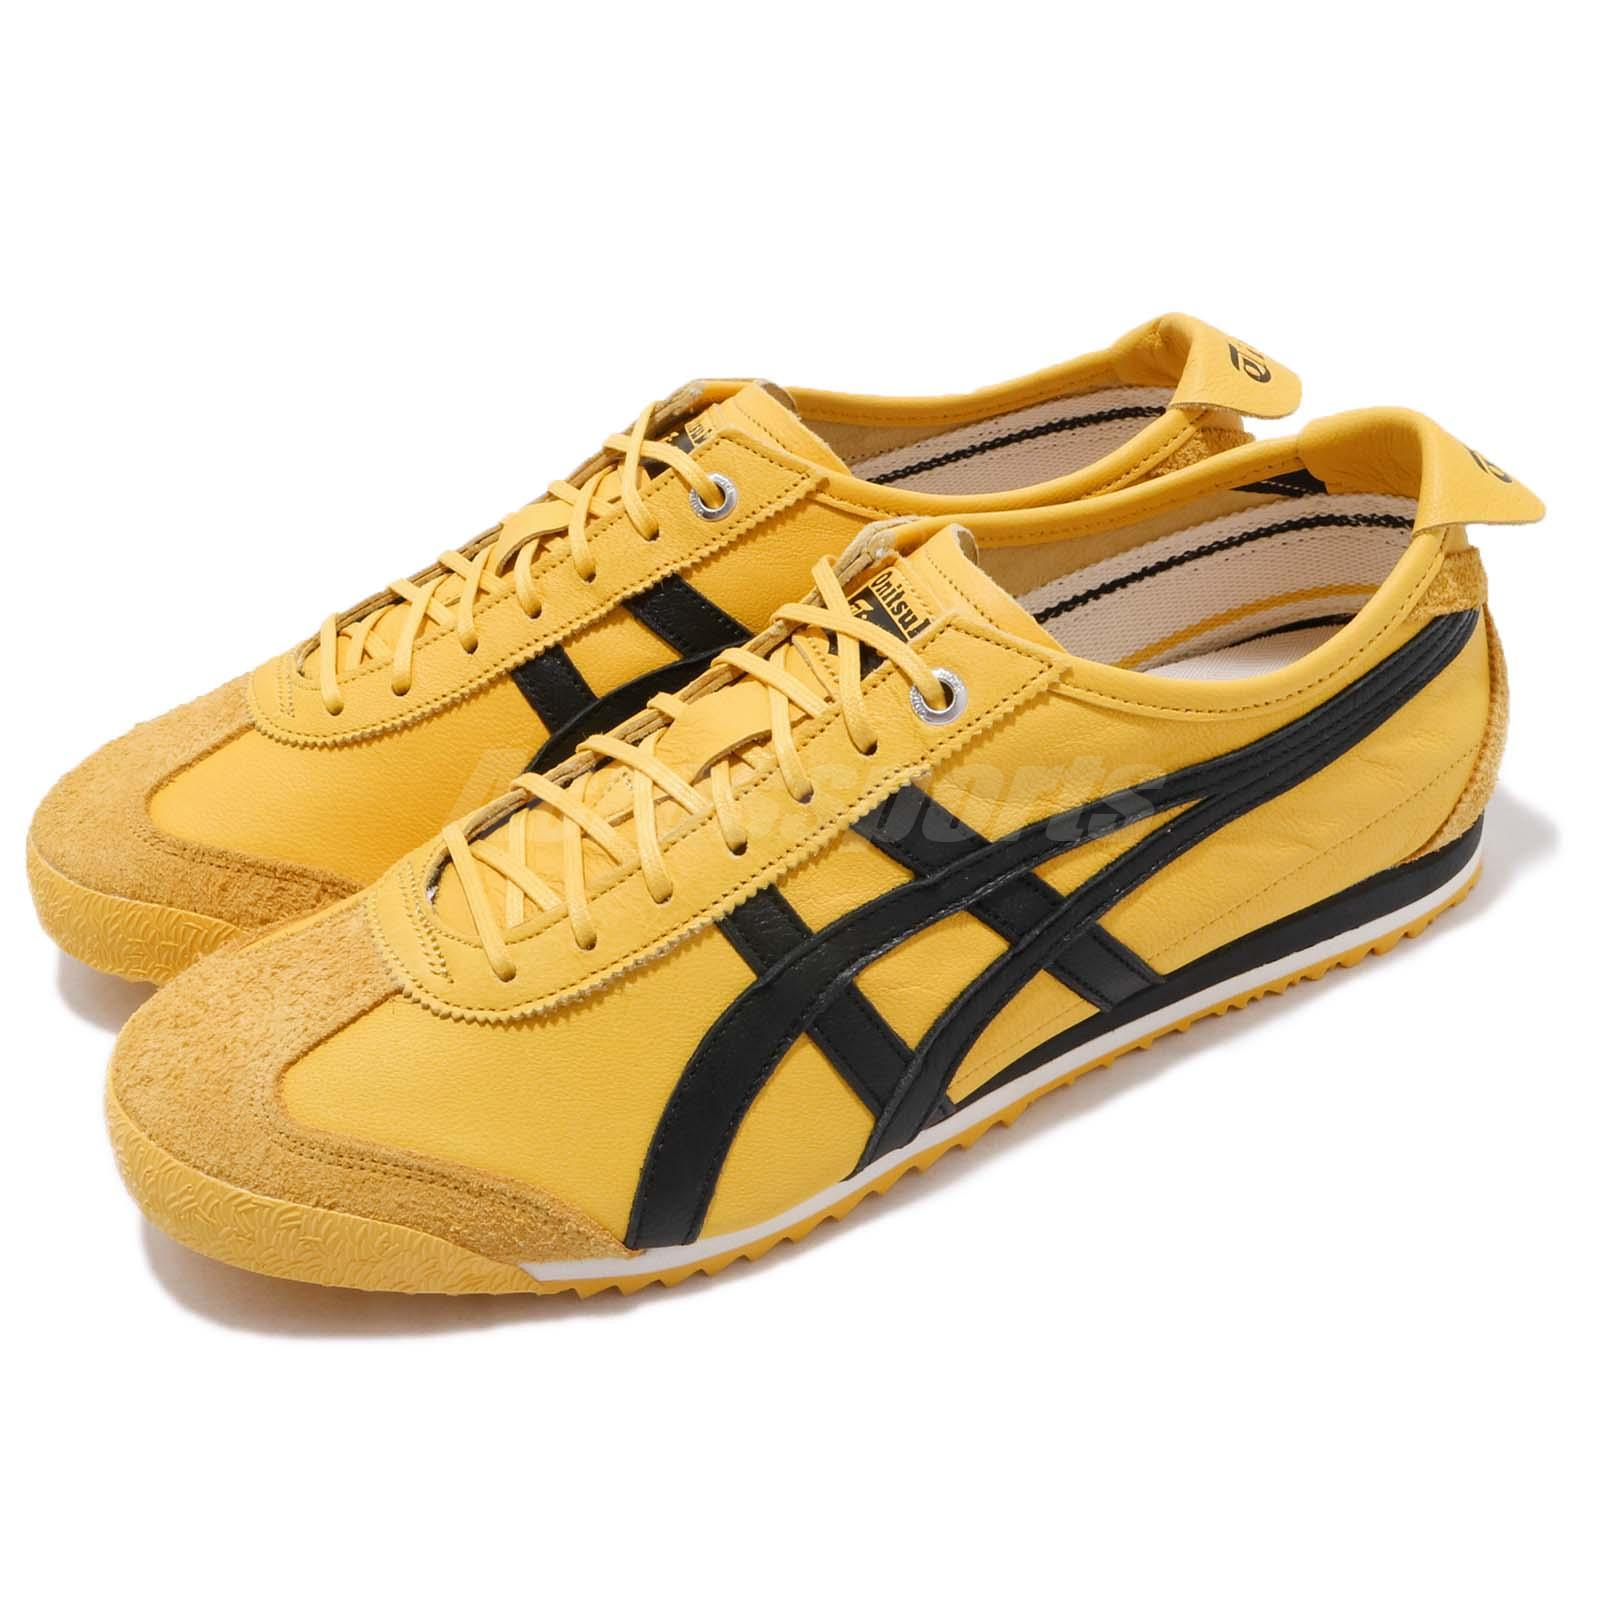 buy popular 2a864 5e010 Details about Asics Onitsuka Tiger Mexico 66 TAI-CHI Yellow Black Men Women  Shoes 1183A036-750